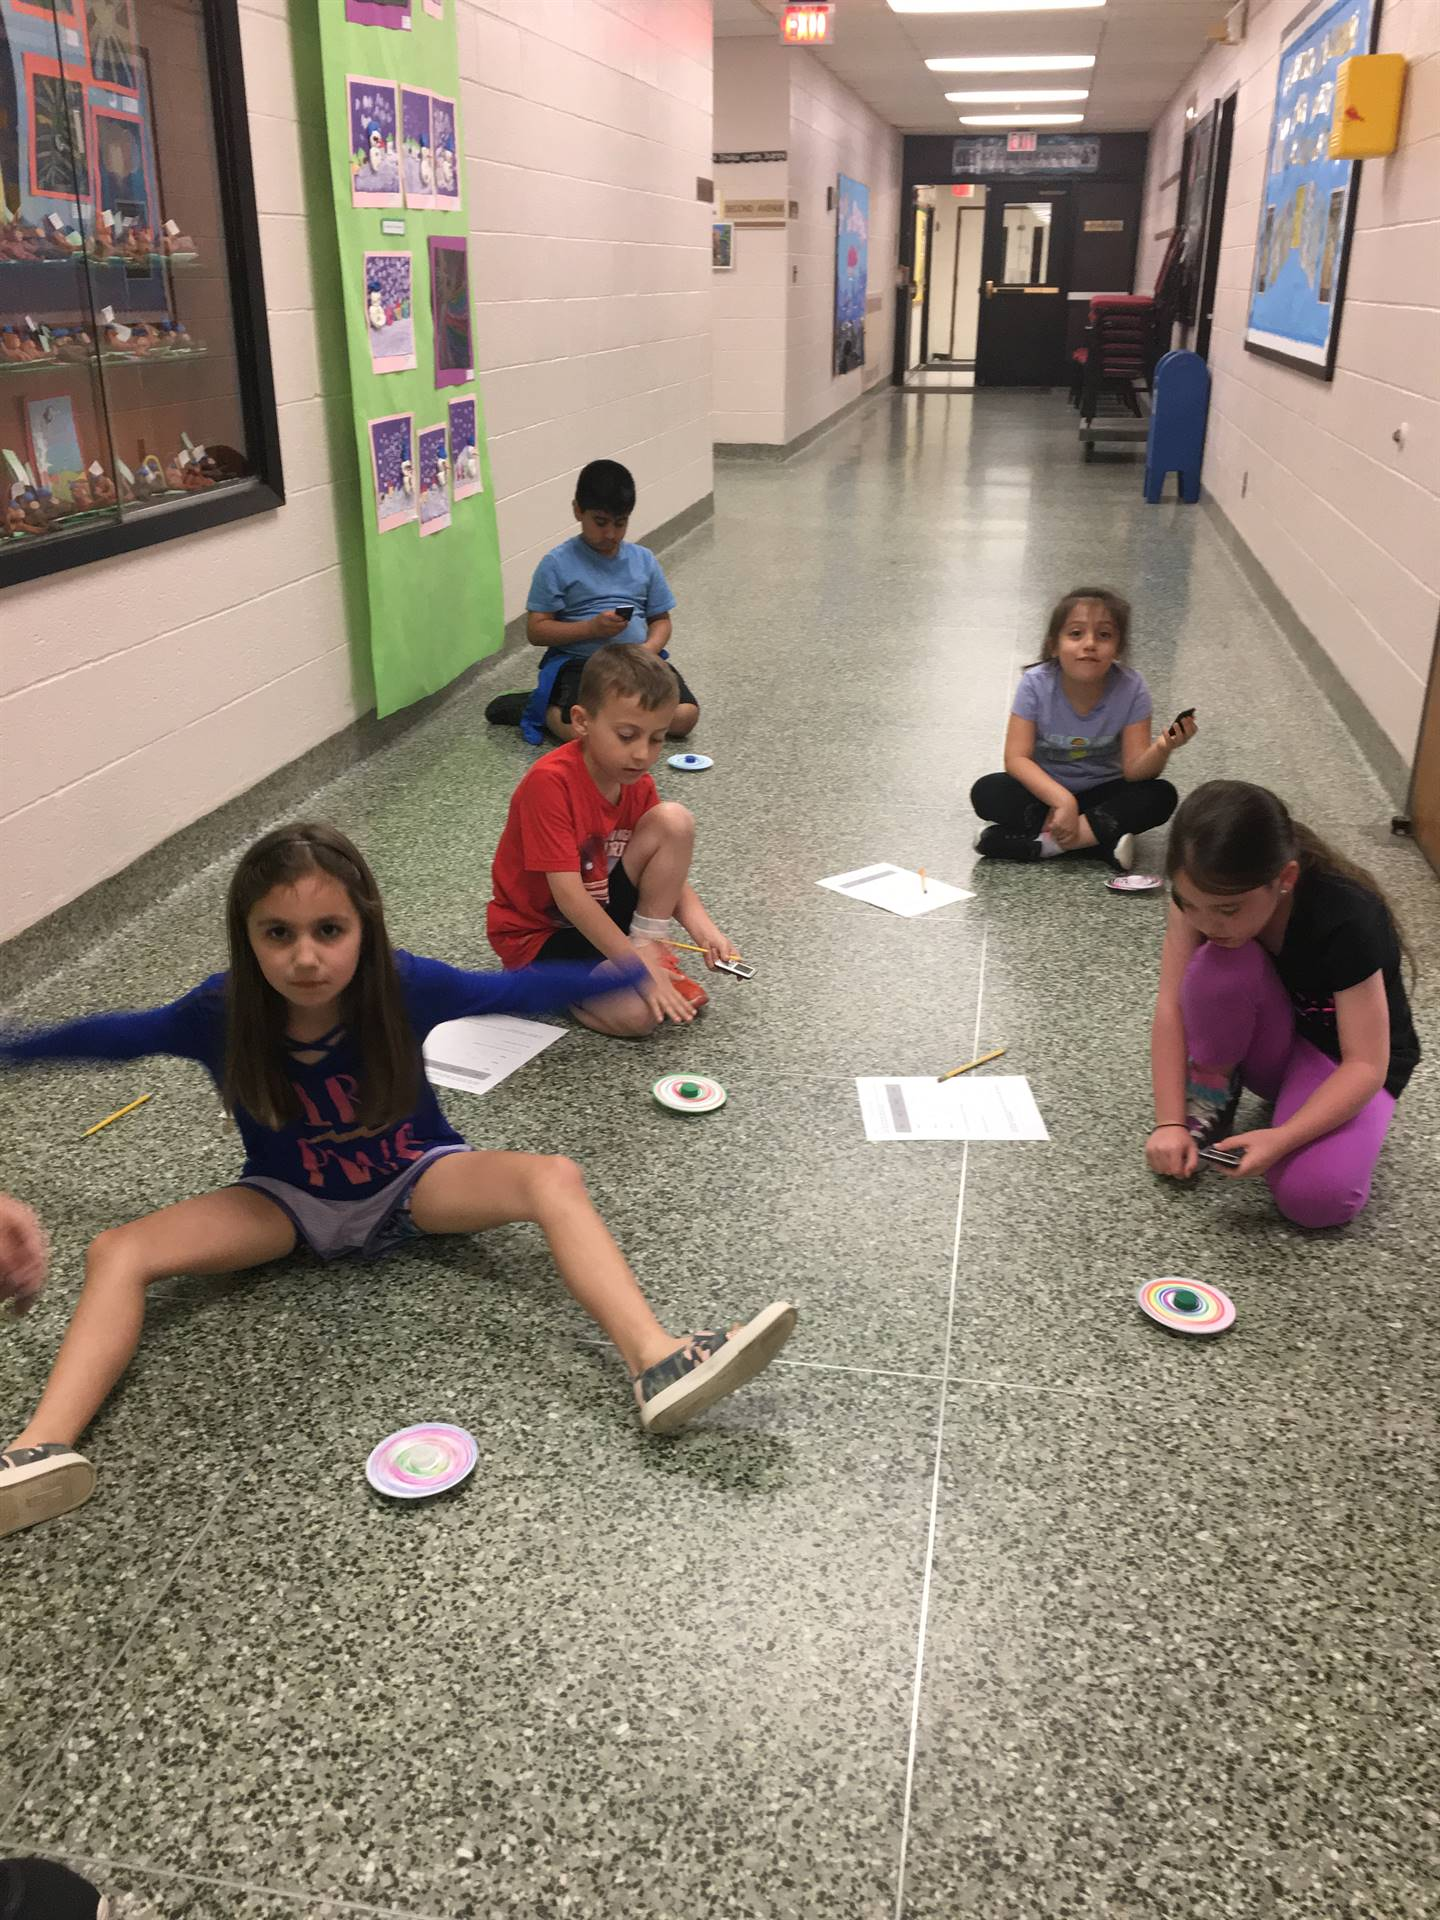 Students In Hallway Spinning Tops and Recording Data